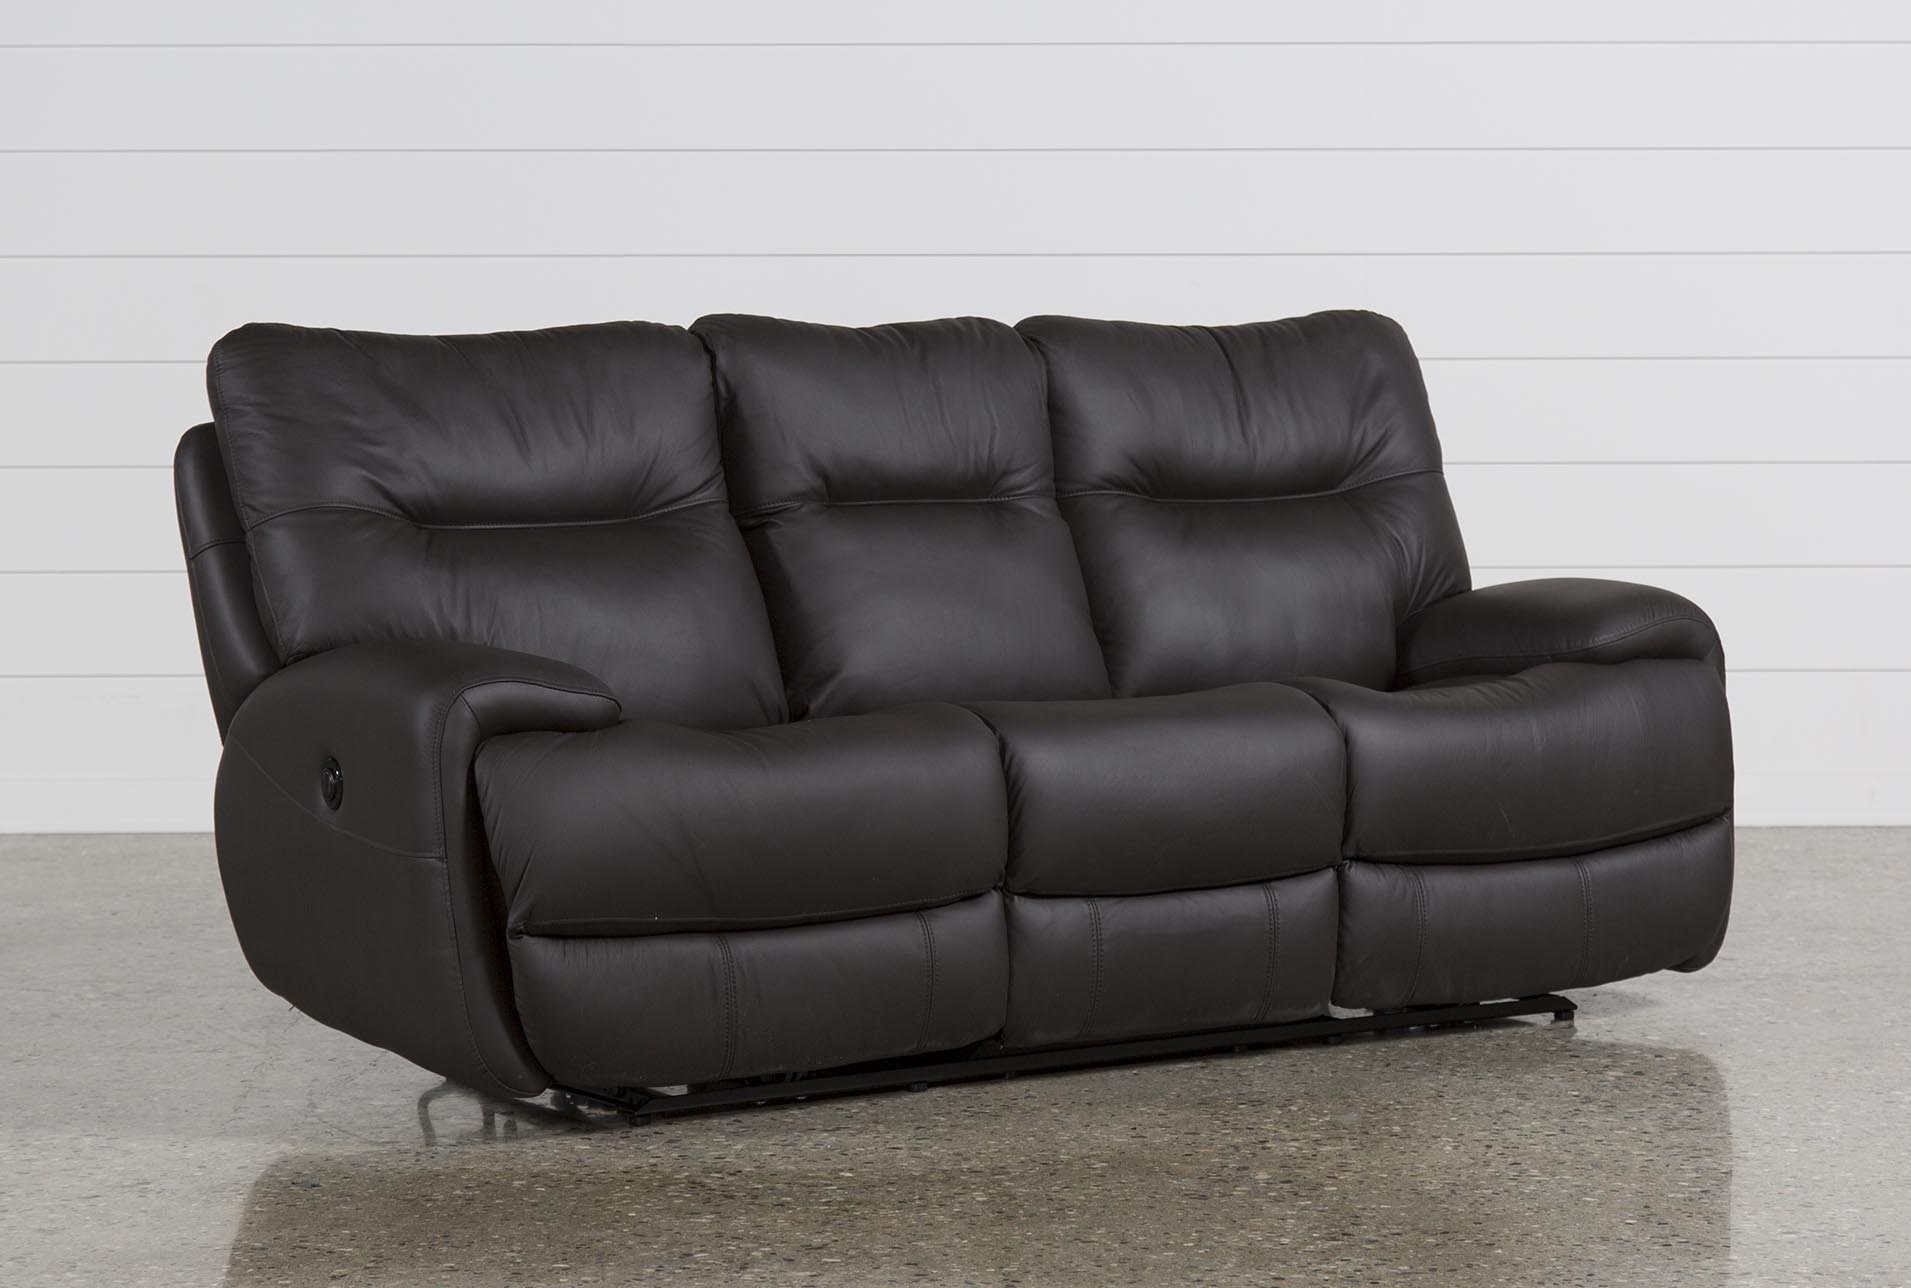 motorized sectional sofa mainstay sleeper brown reclining sofas and